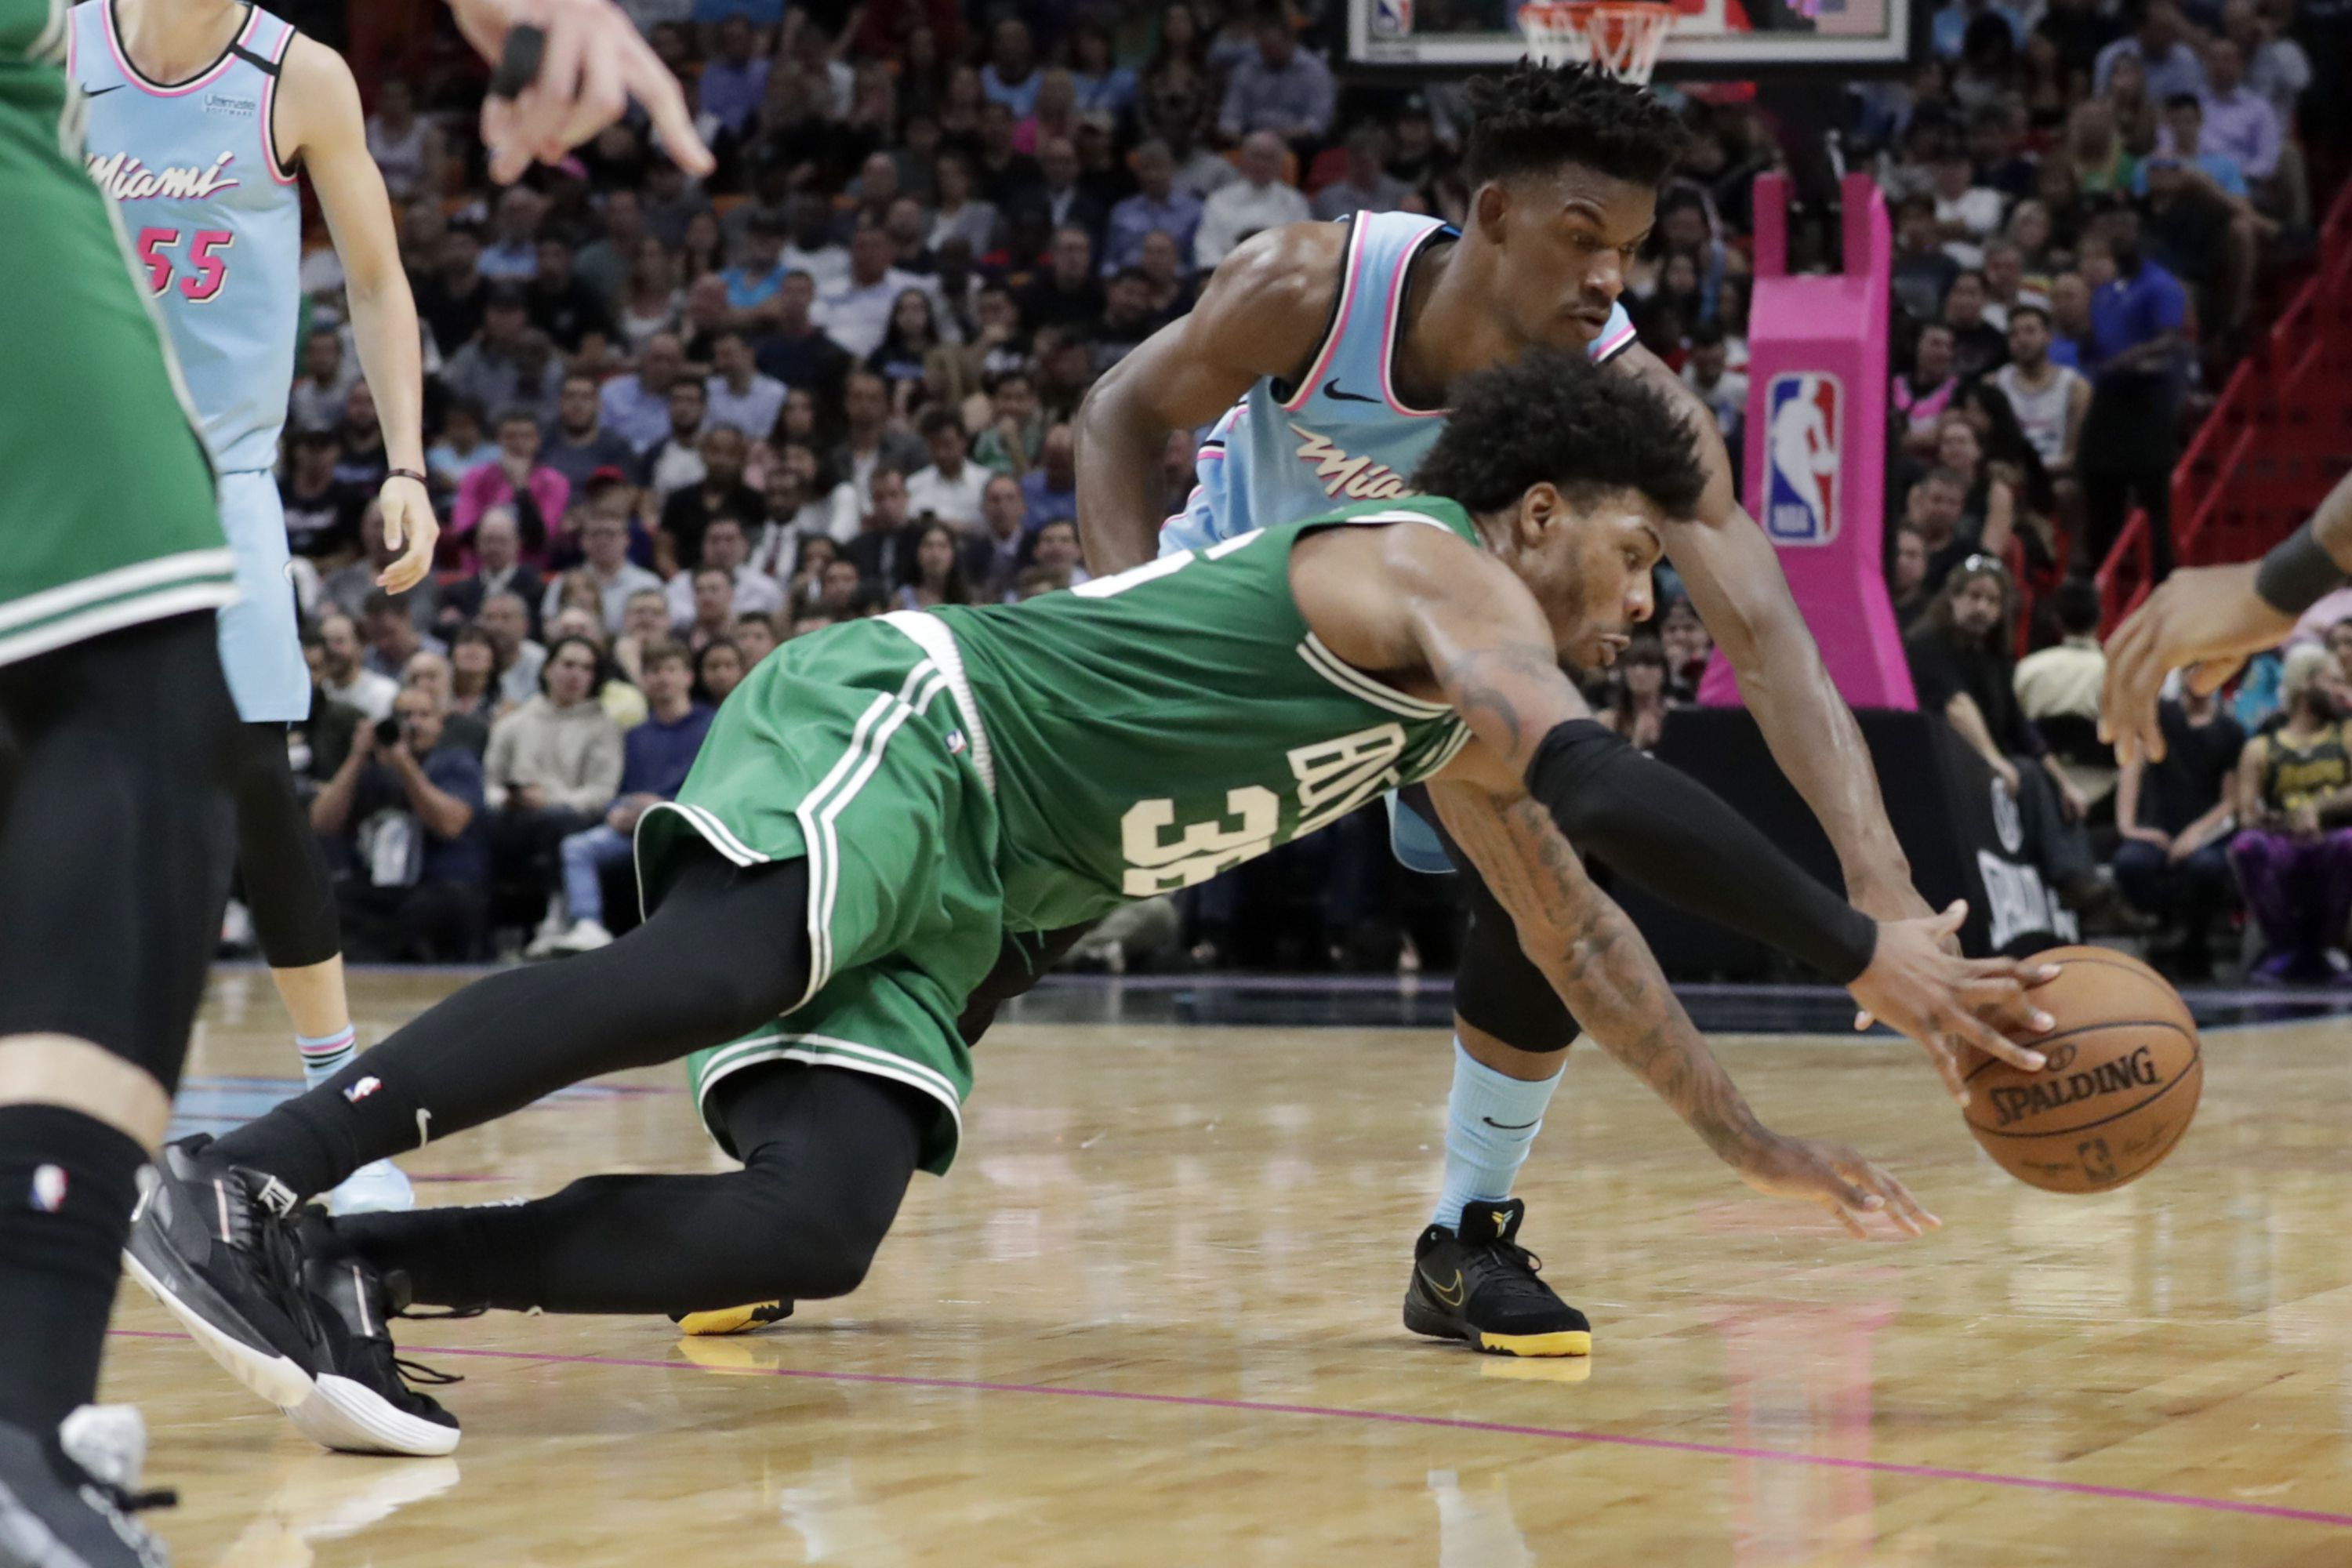 Boston Celtics Vs Miami Heat Free Live Stream 9 15 20 How To Watch Nba Playoffs Time Channel Pennlive Com